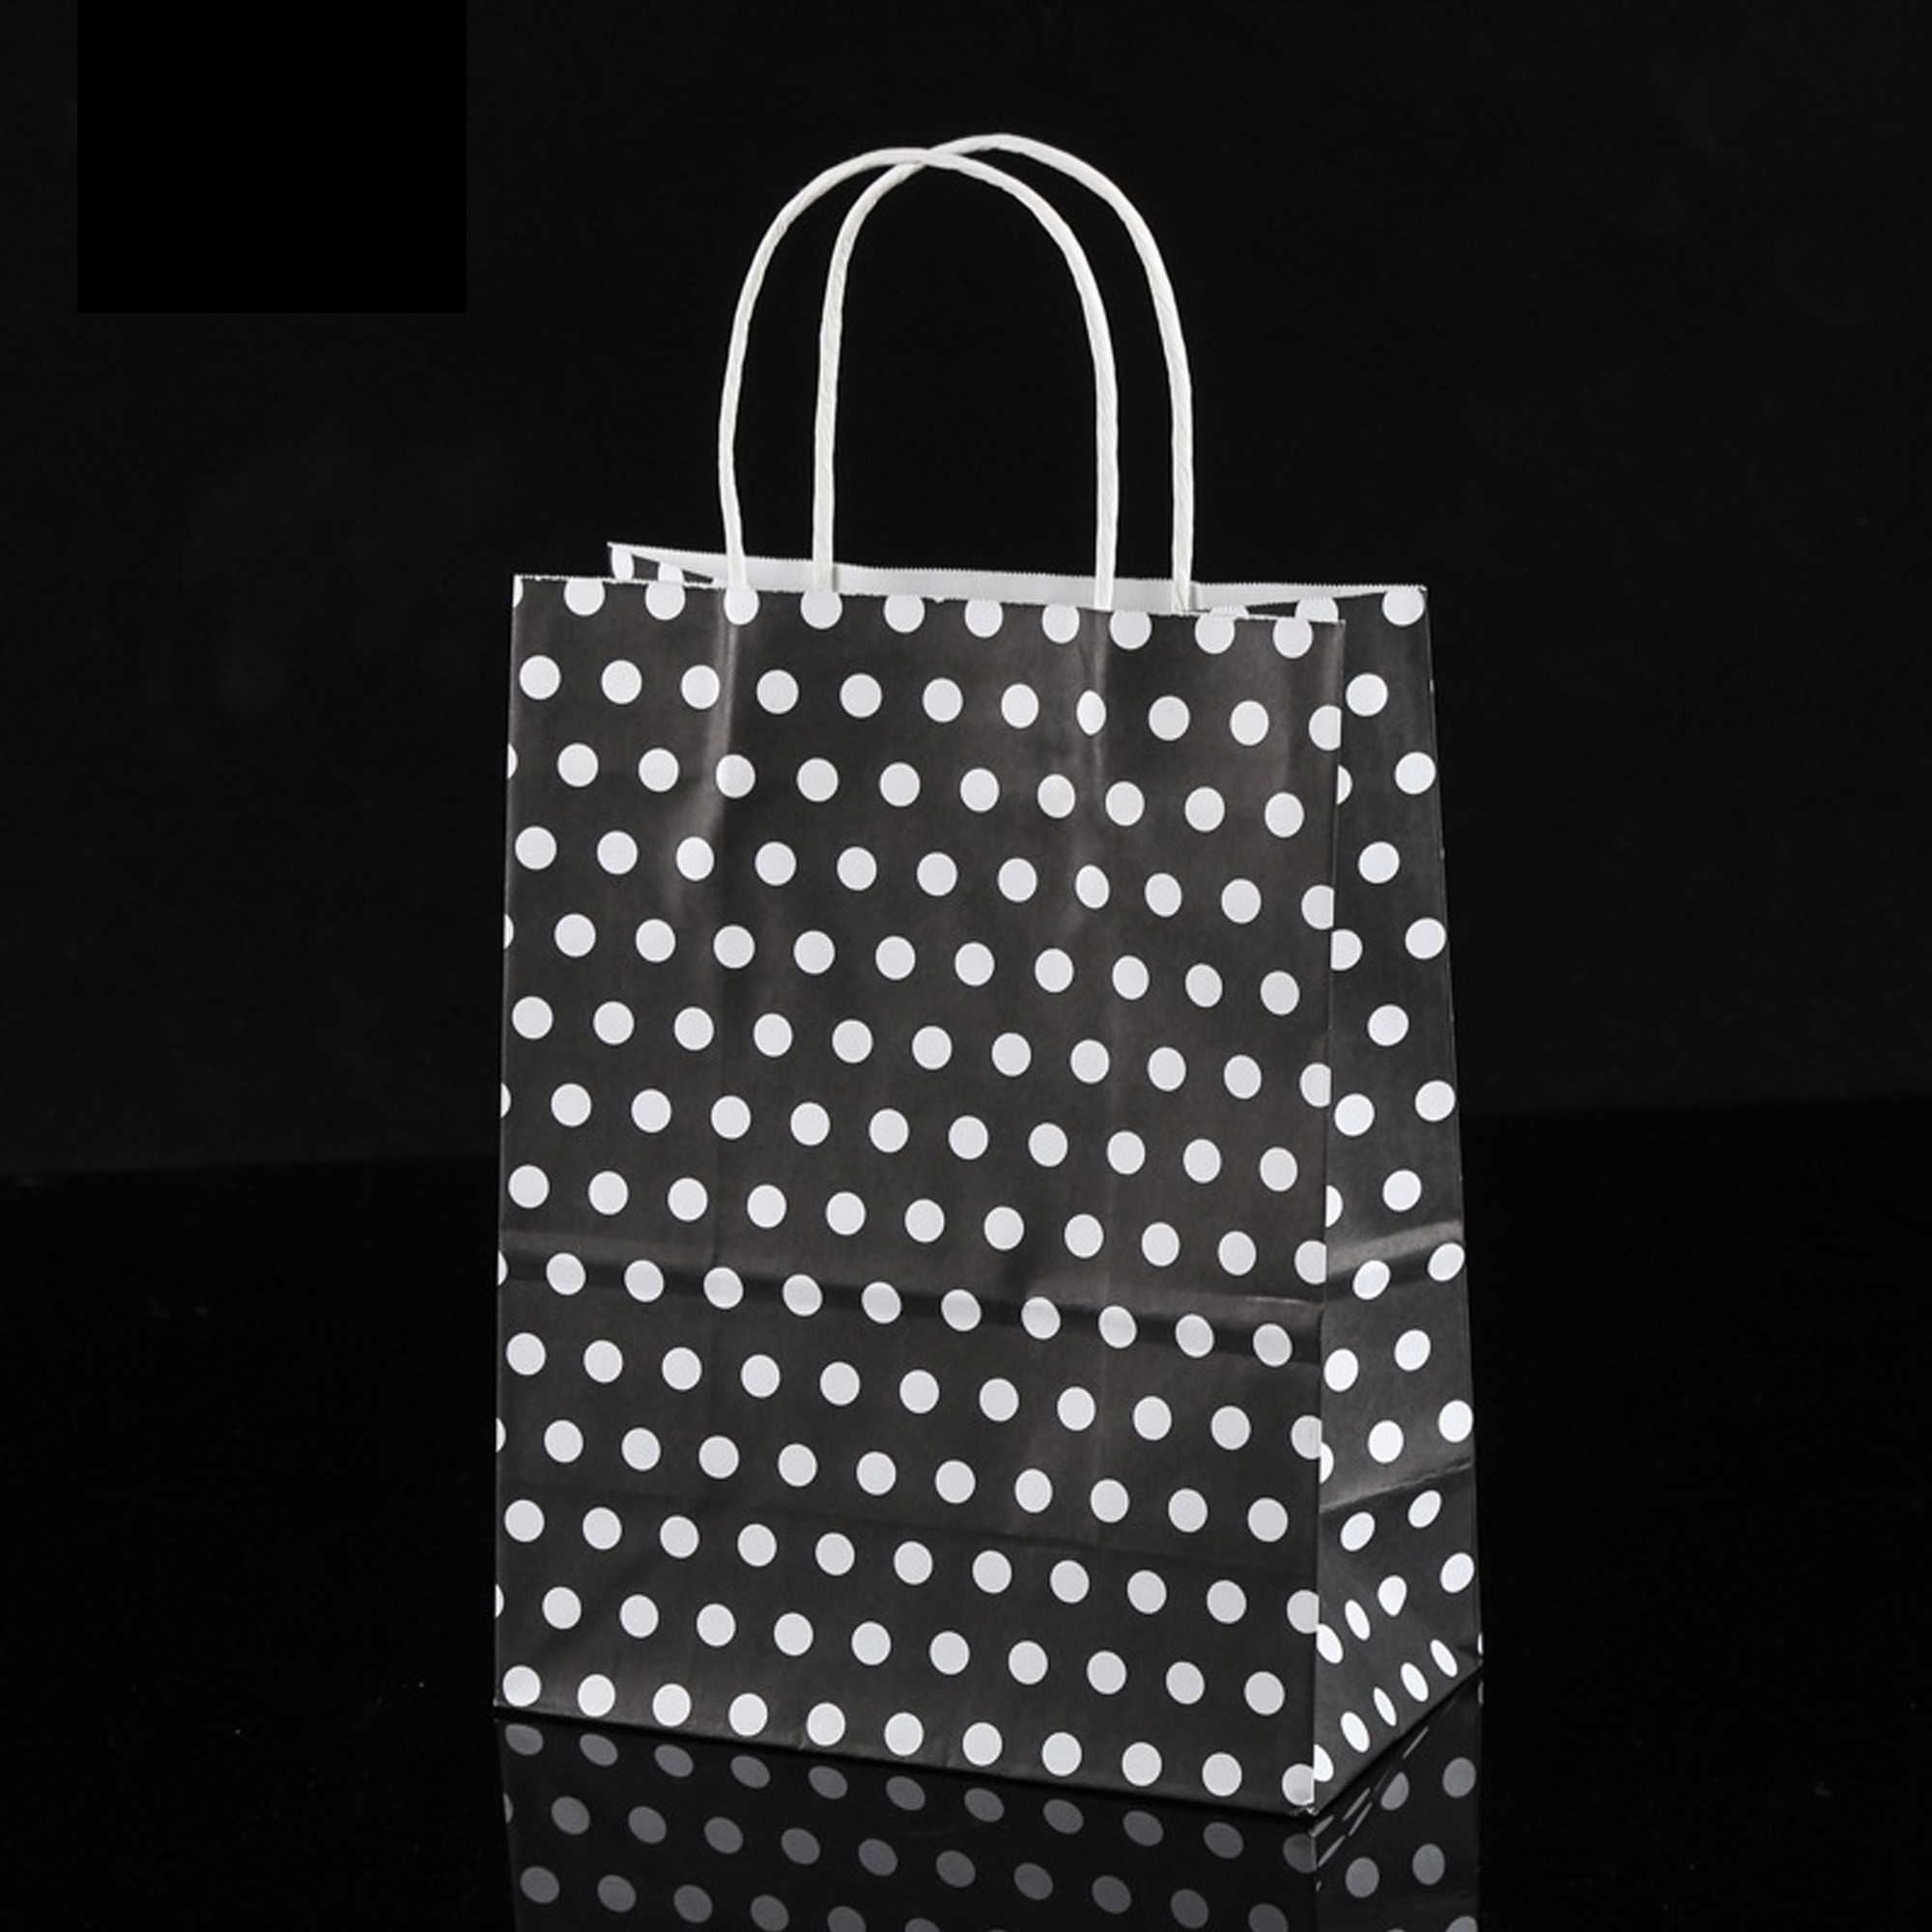 Black & White Polka Dot Paper Gift Bags 8.3 inch x 4.3 inch x 10.6 inch (36 Bags/Lot)